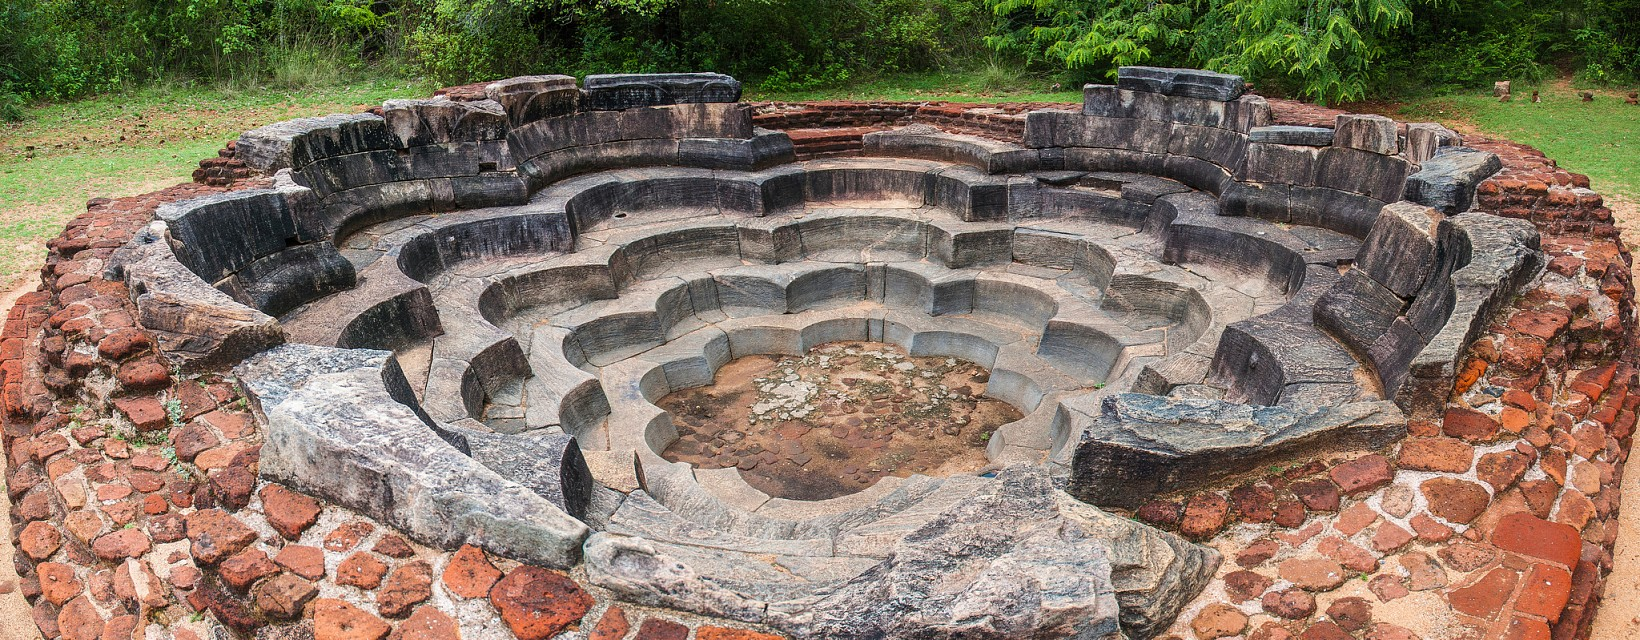 Lotus Bath at the ancient city of Polonnaruwa - Polonnaruwa